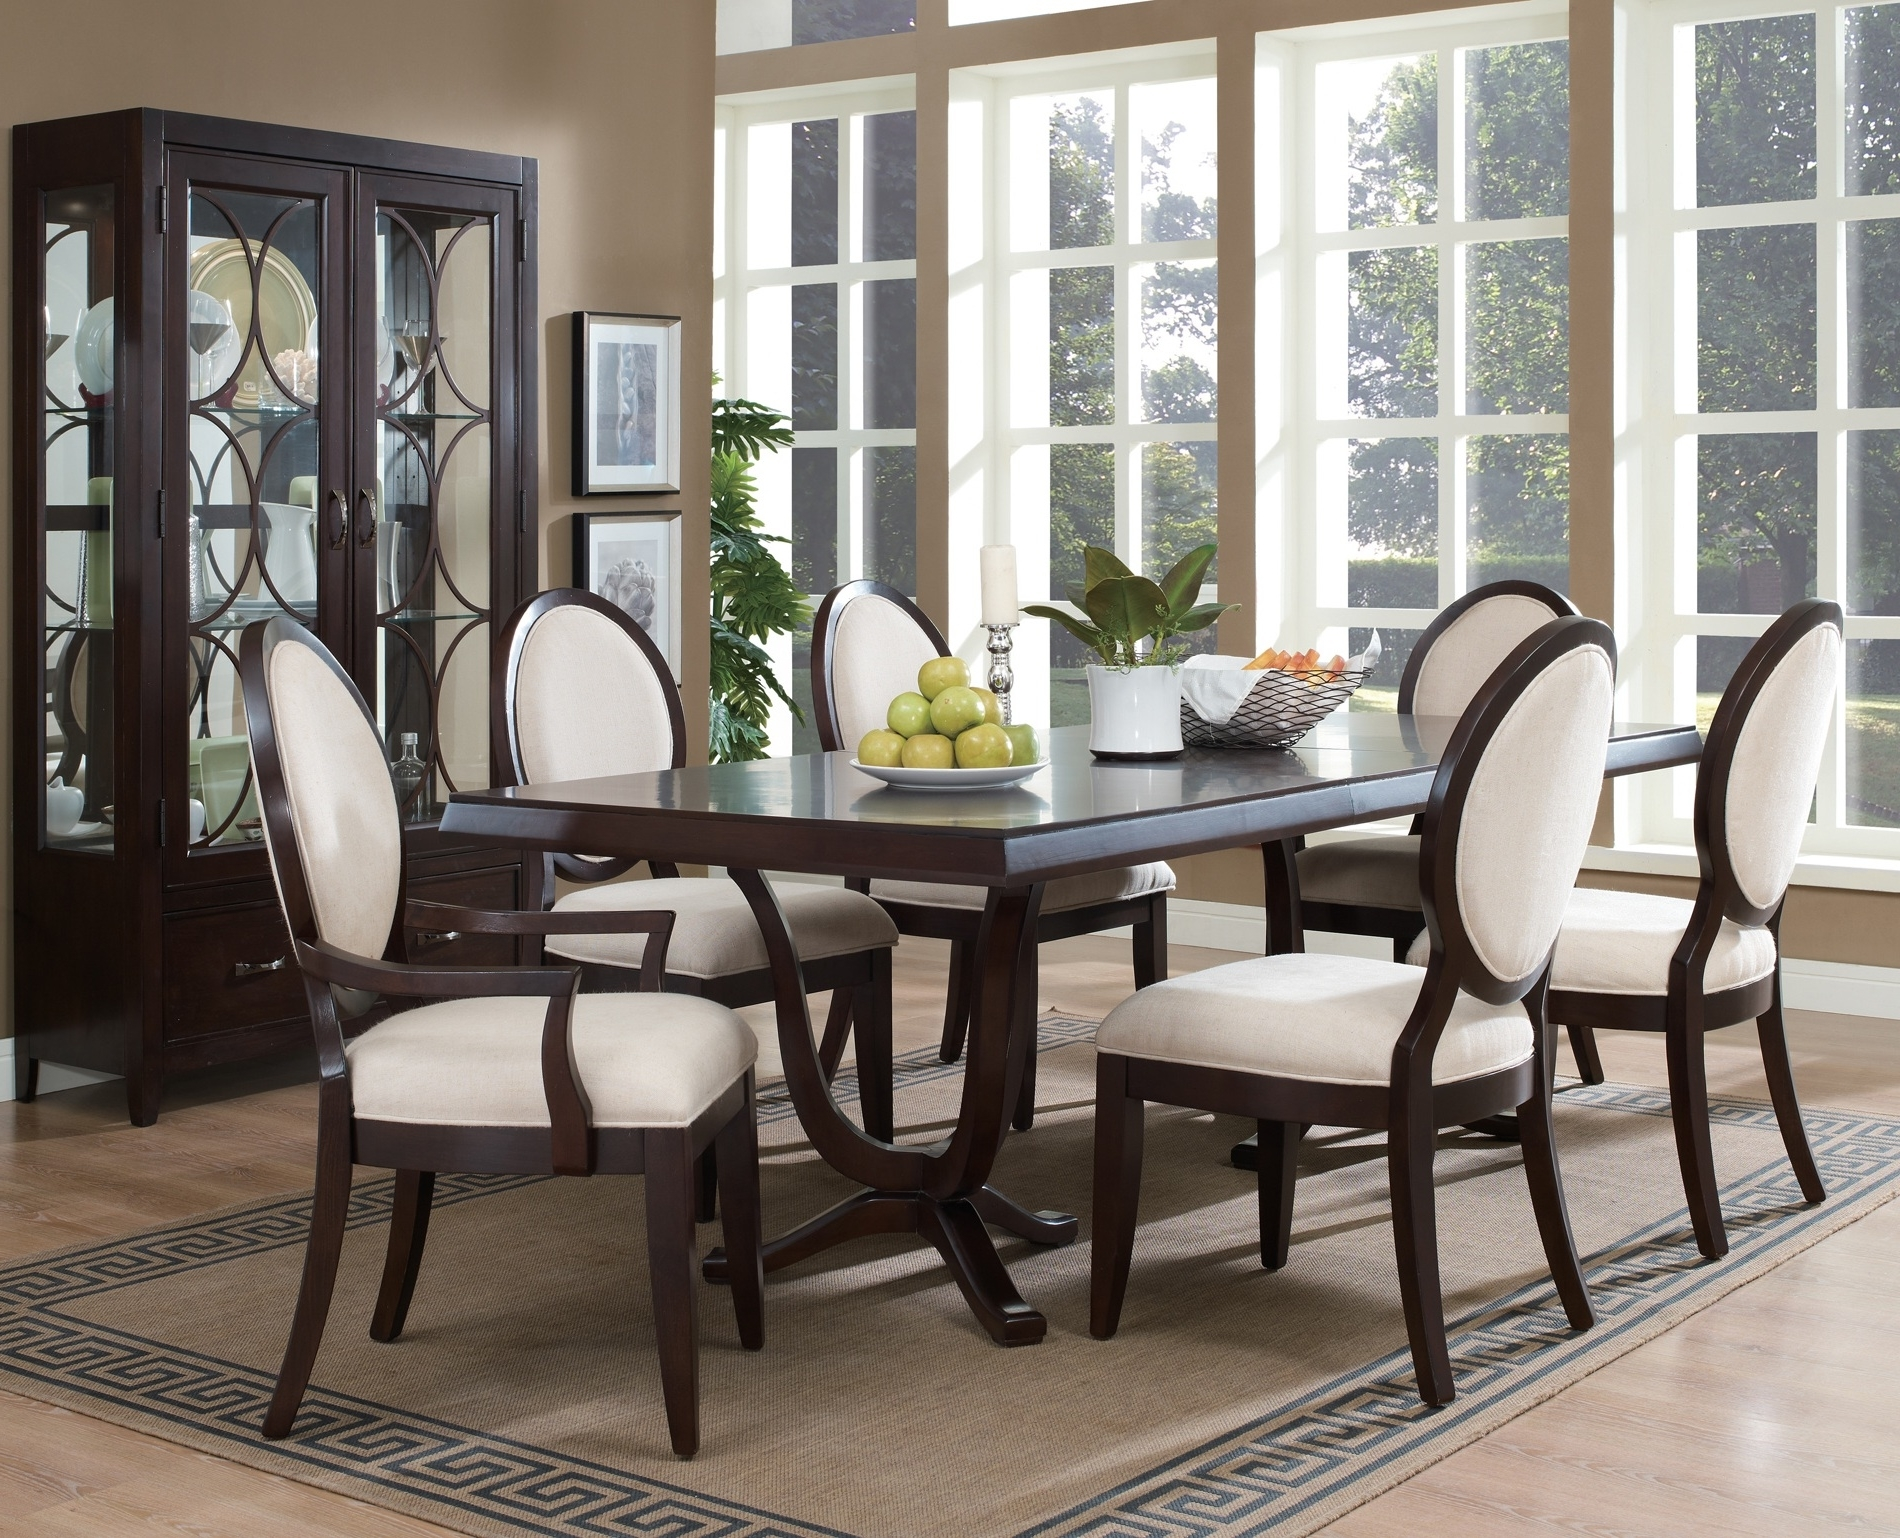 Featured Image of Beauty European Dining Room Furniture Set